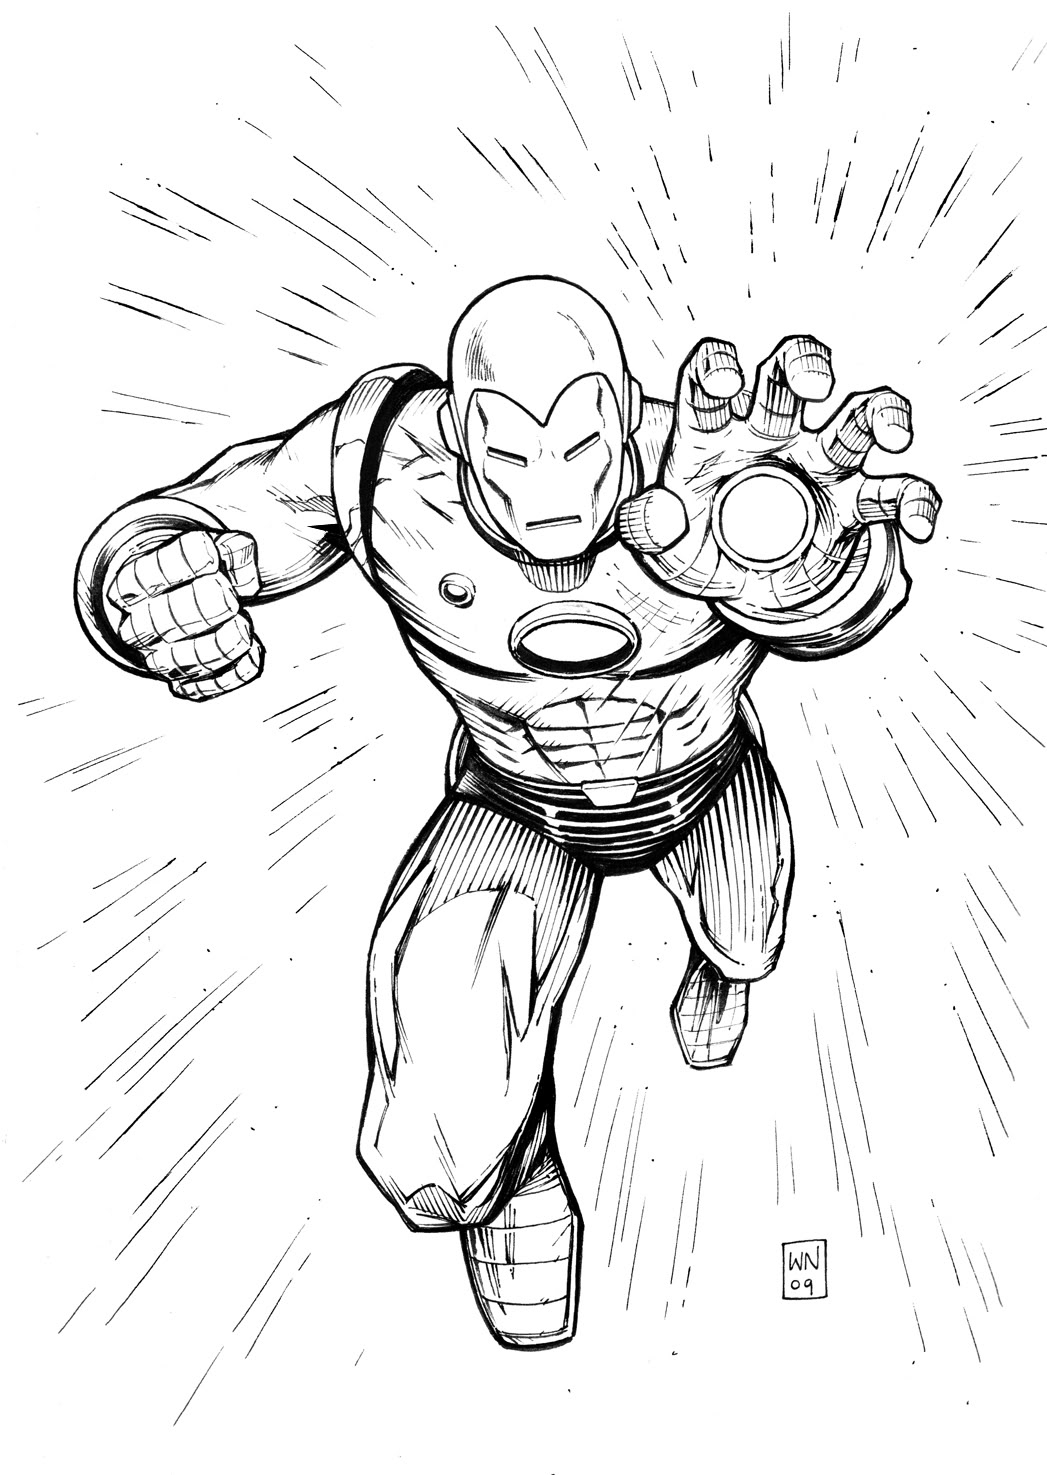 avengers iron man coloring pages avengers iron man coloring pages coloring pages iron pages avengers coloring man